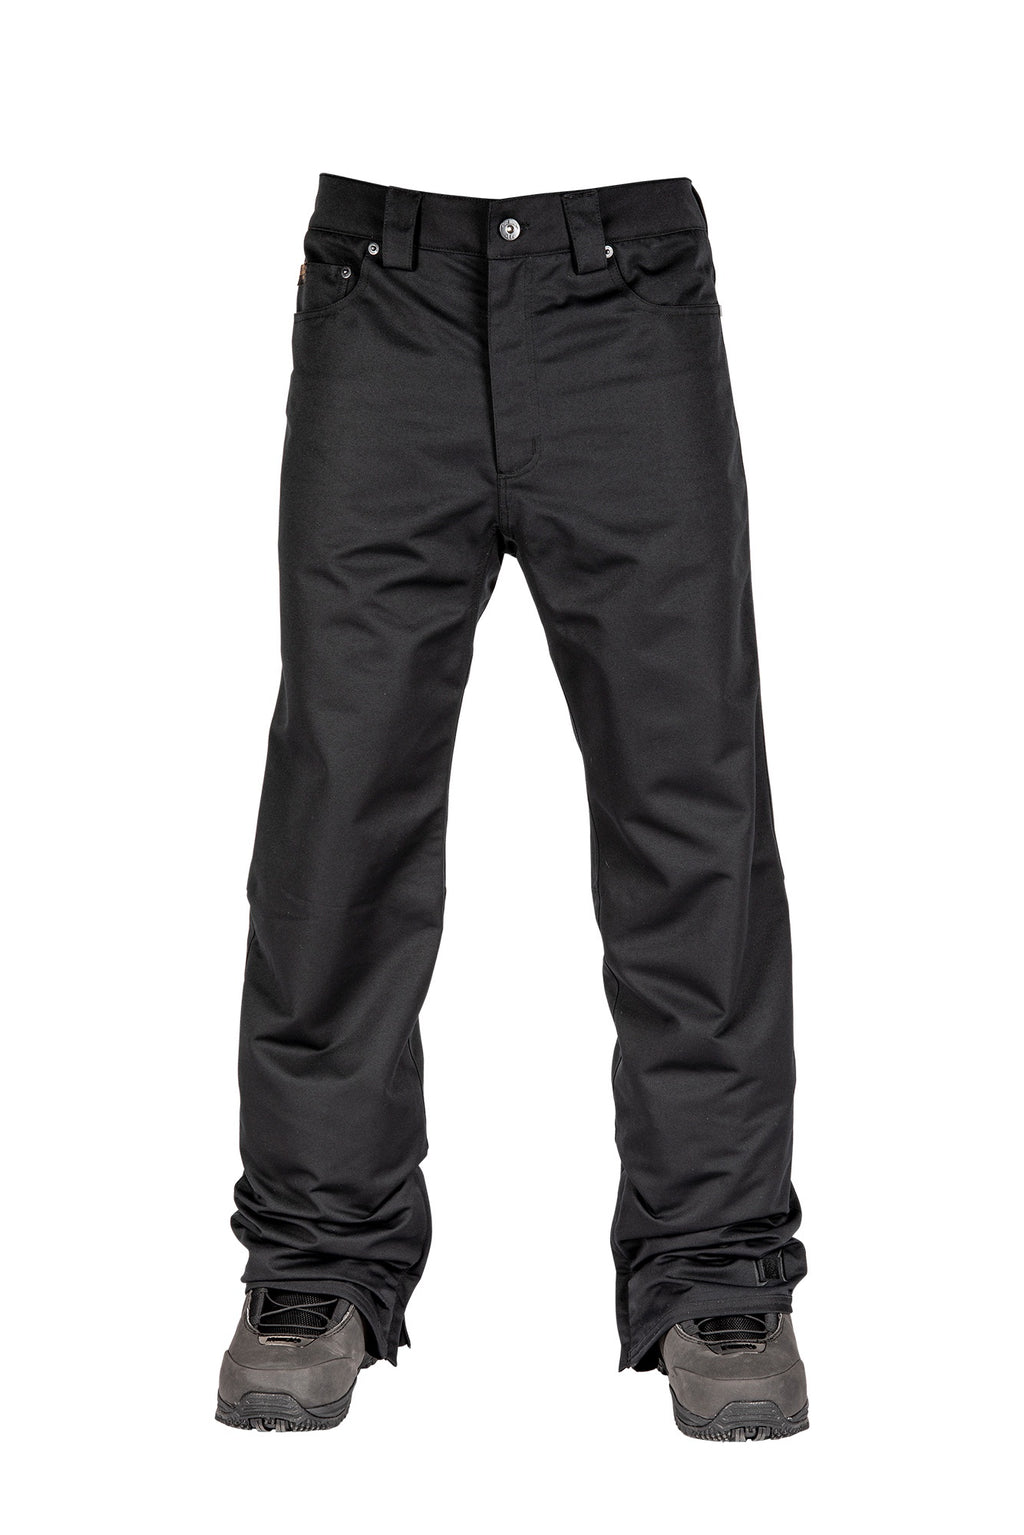 L1 Premium Goods Straight Standard Snow Pants - Black